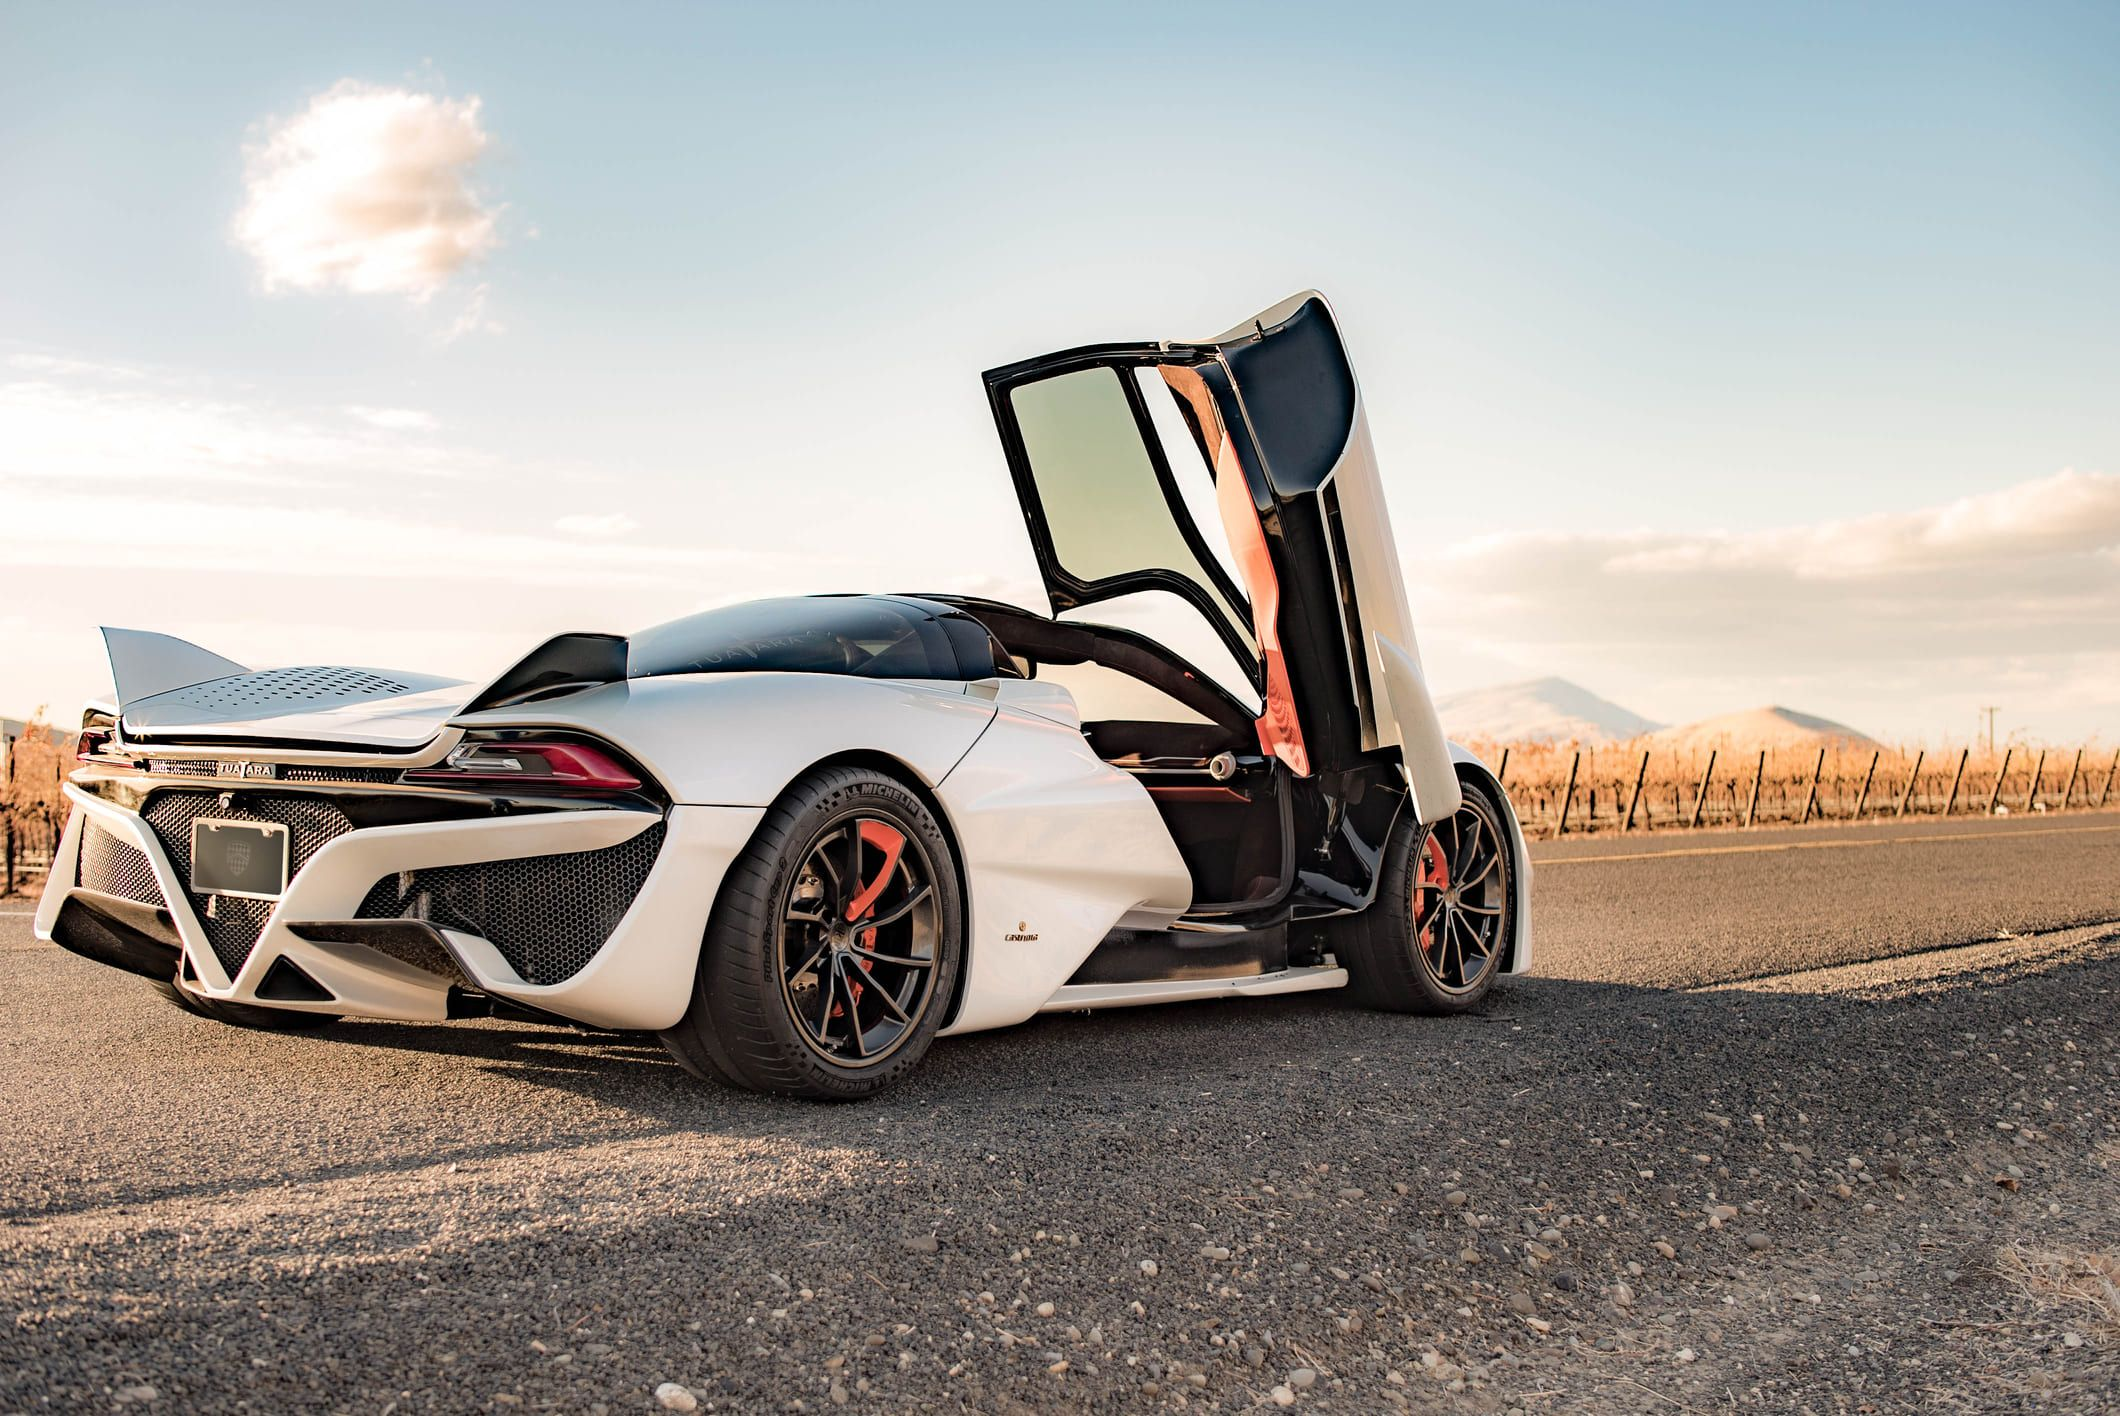 Ssc Tuatara Speed Price Records And Specifications 2020 In 2020 Fast Cars Tuatara Bugatti Veyron Super Sport